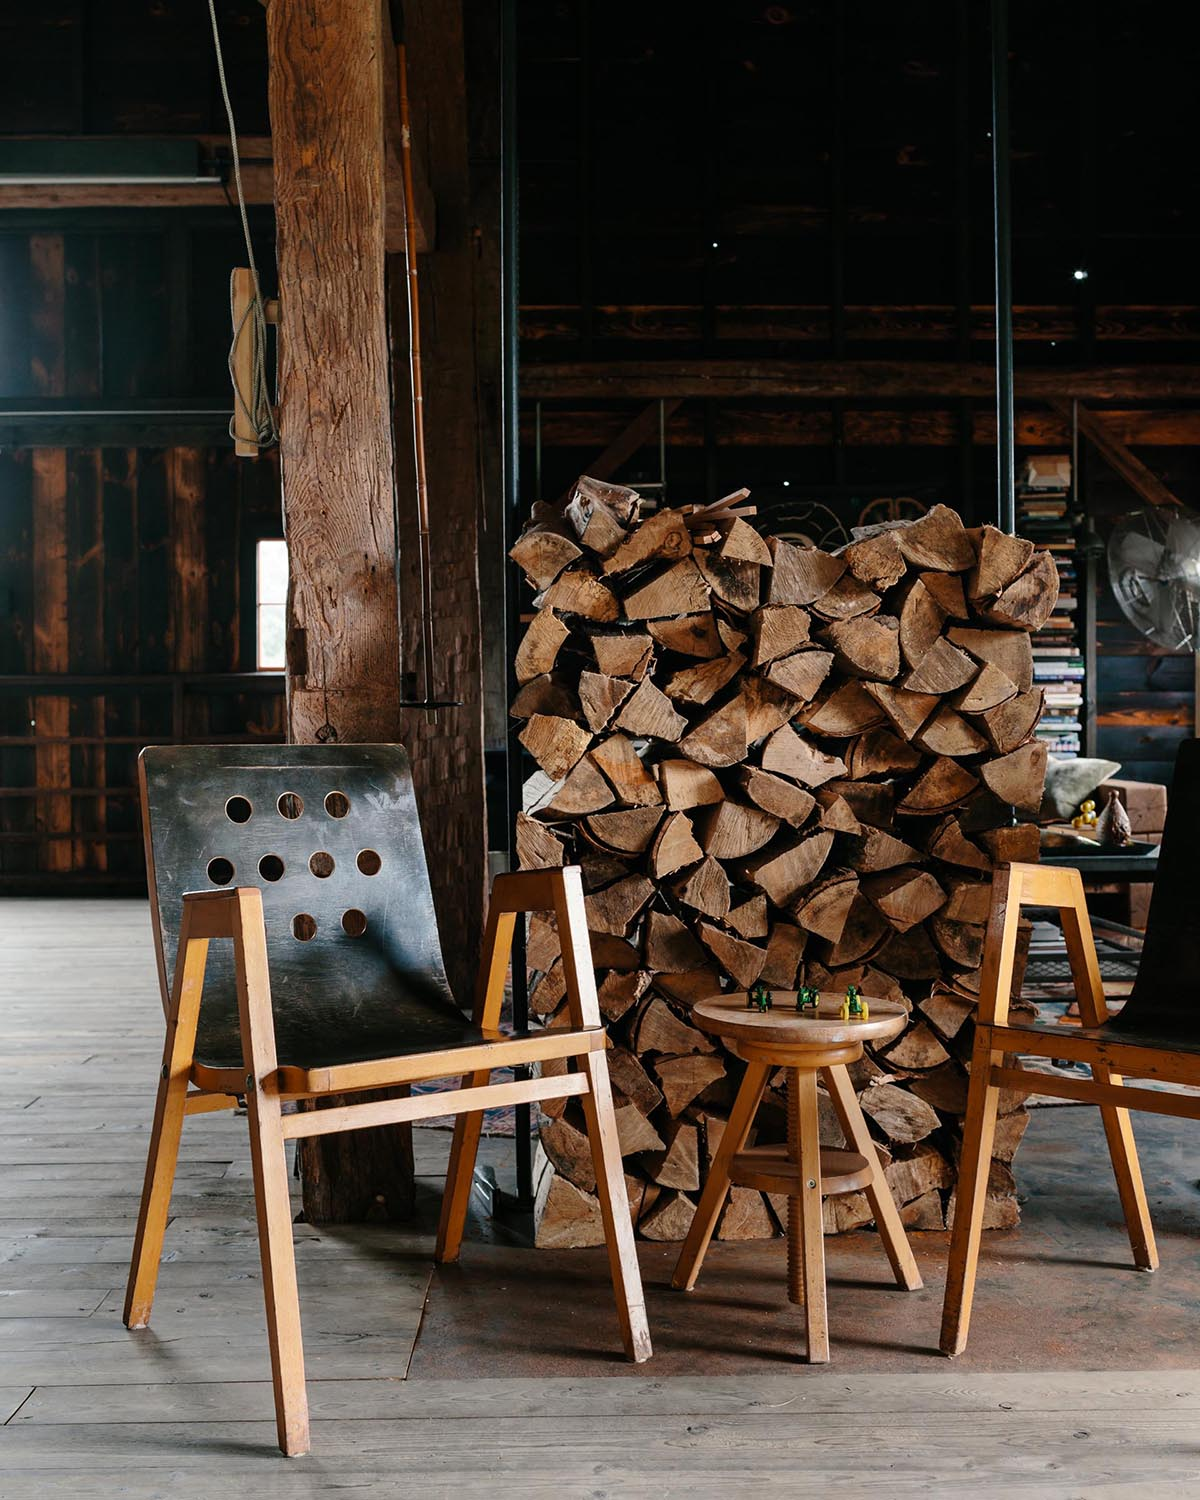 Vintage furniture in a renovated barn.